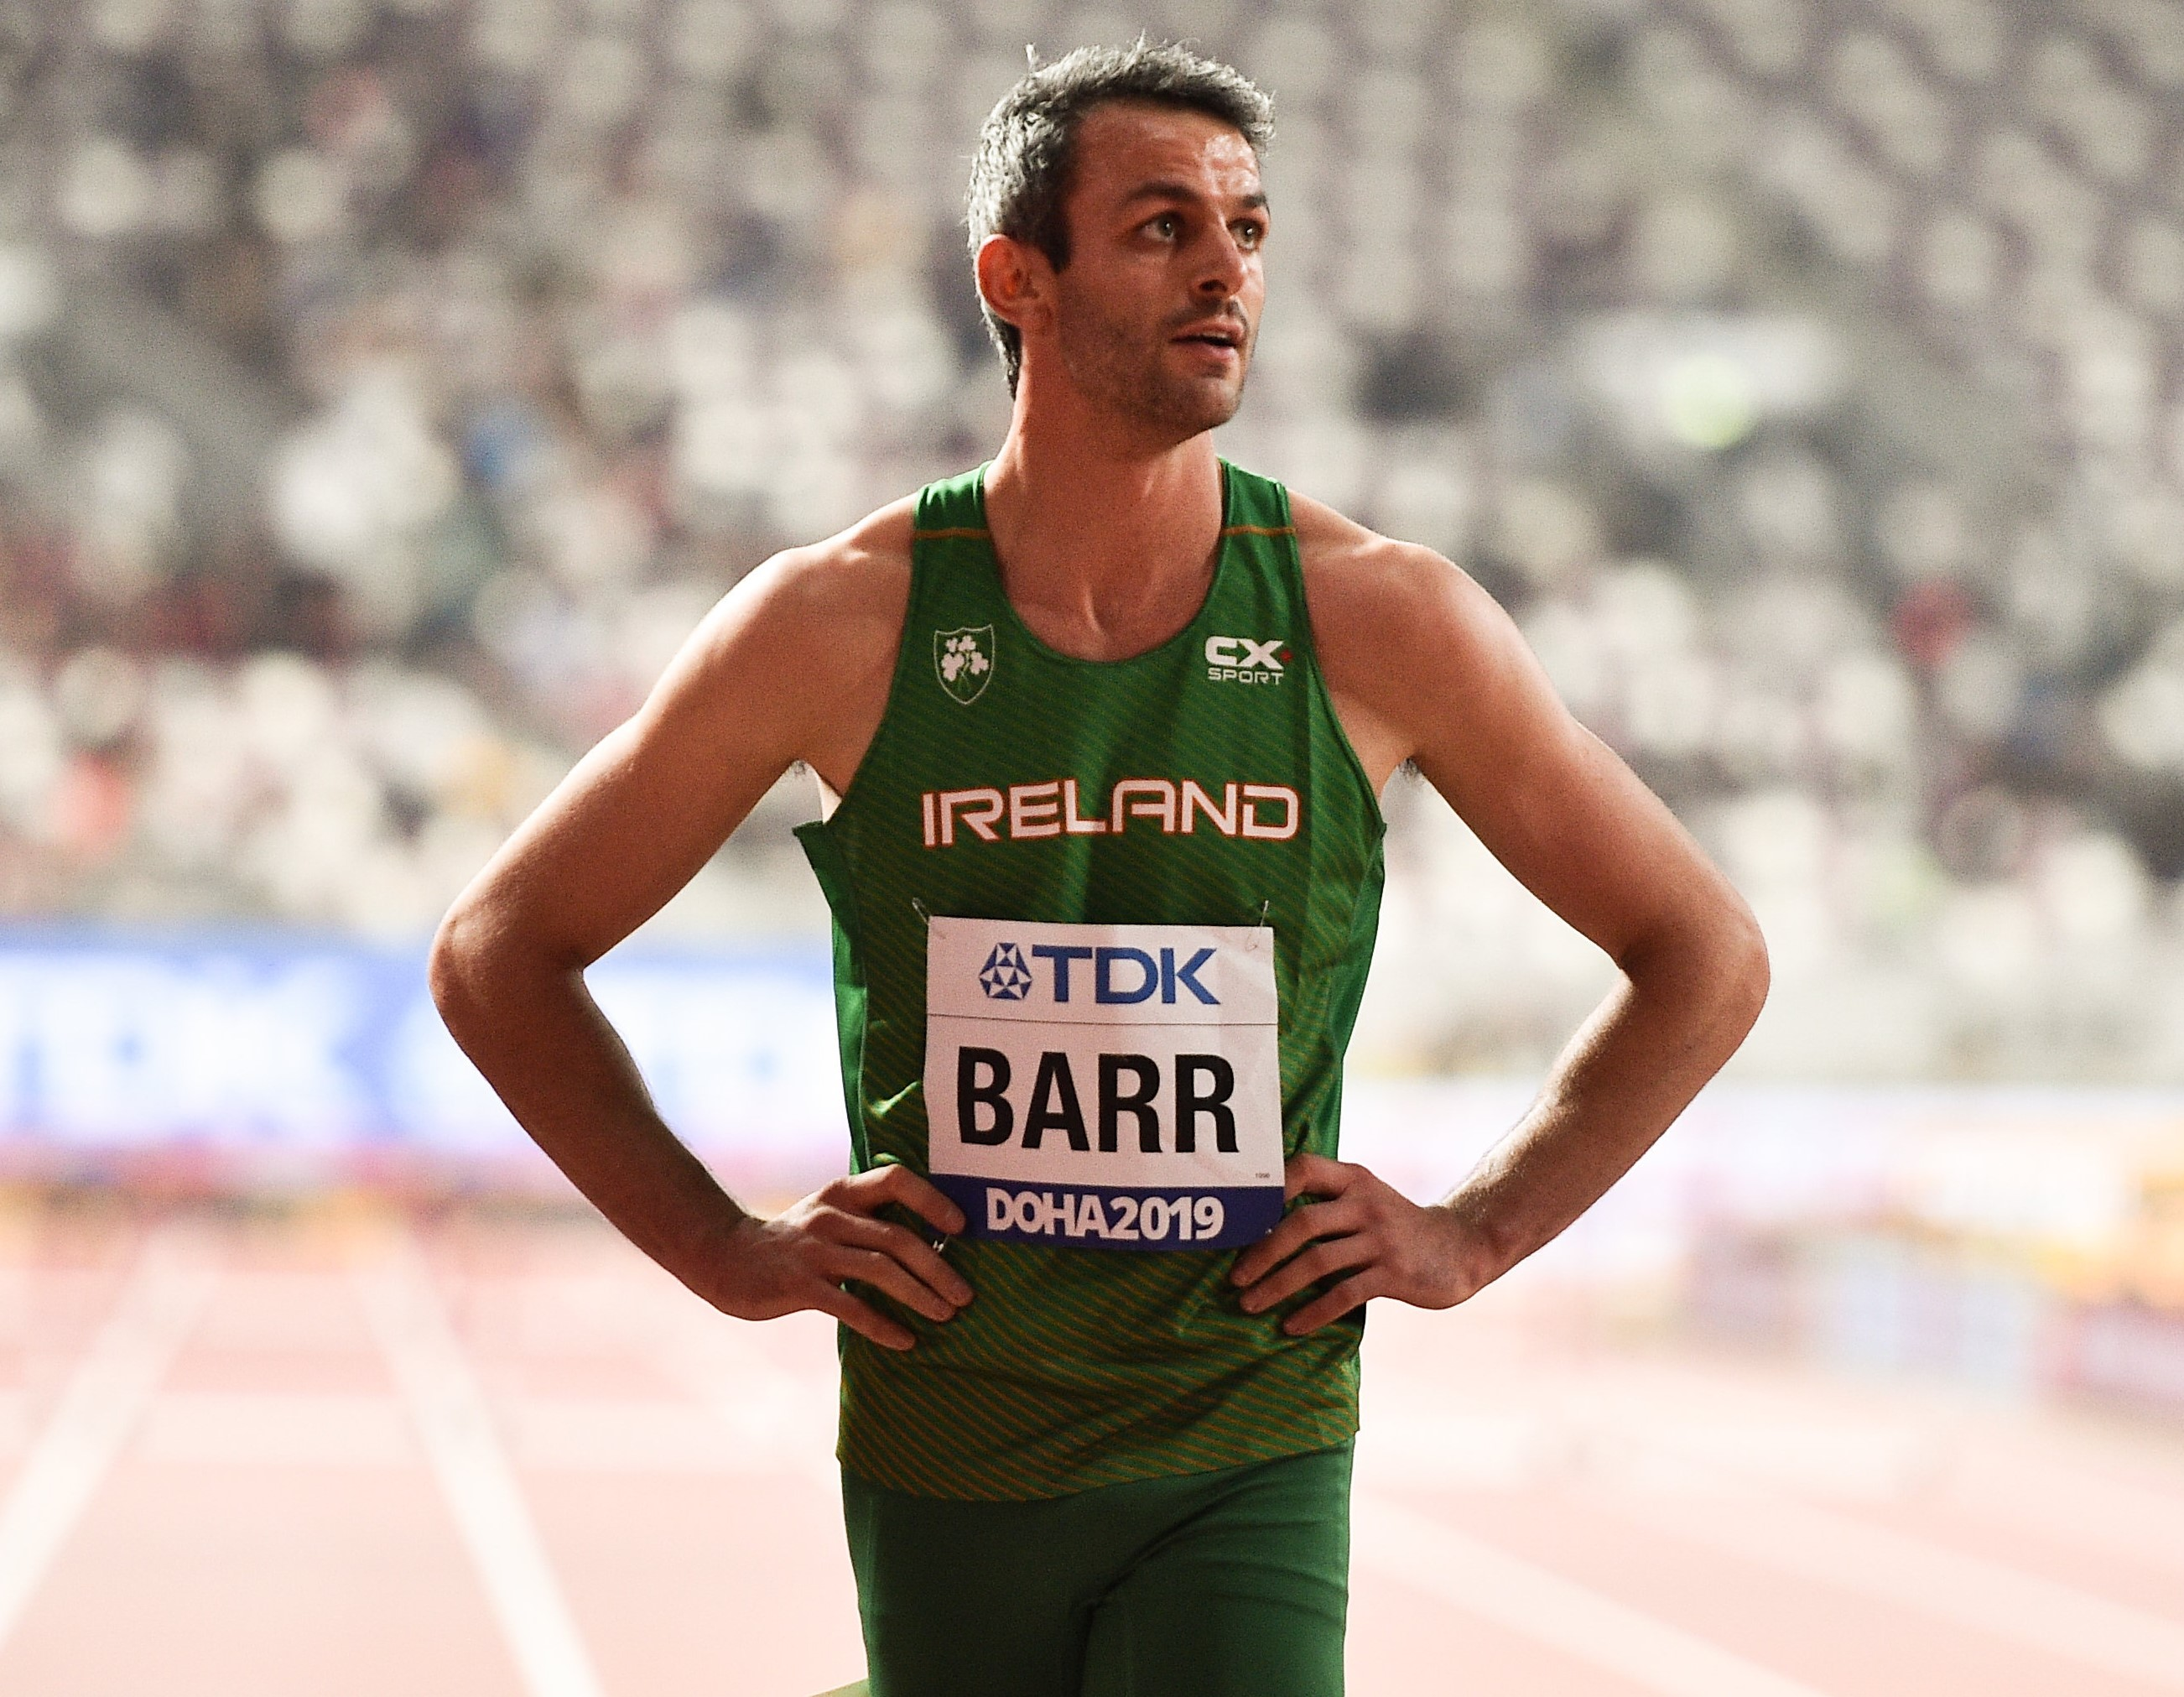 Barr just misses out on world final